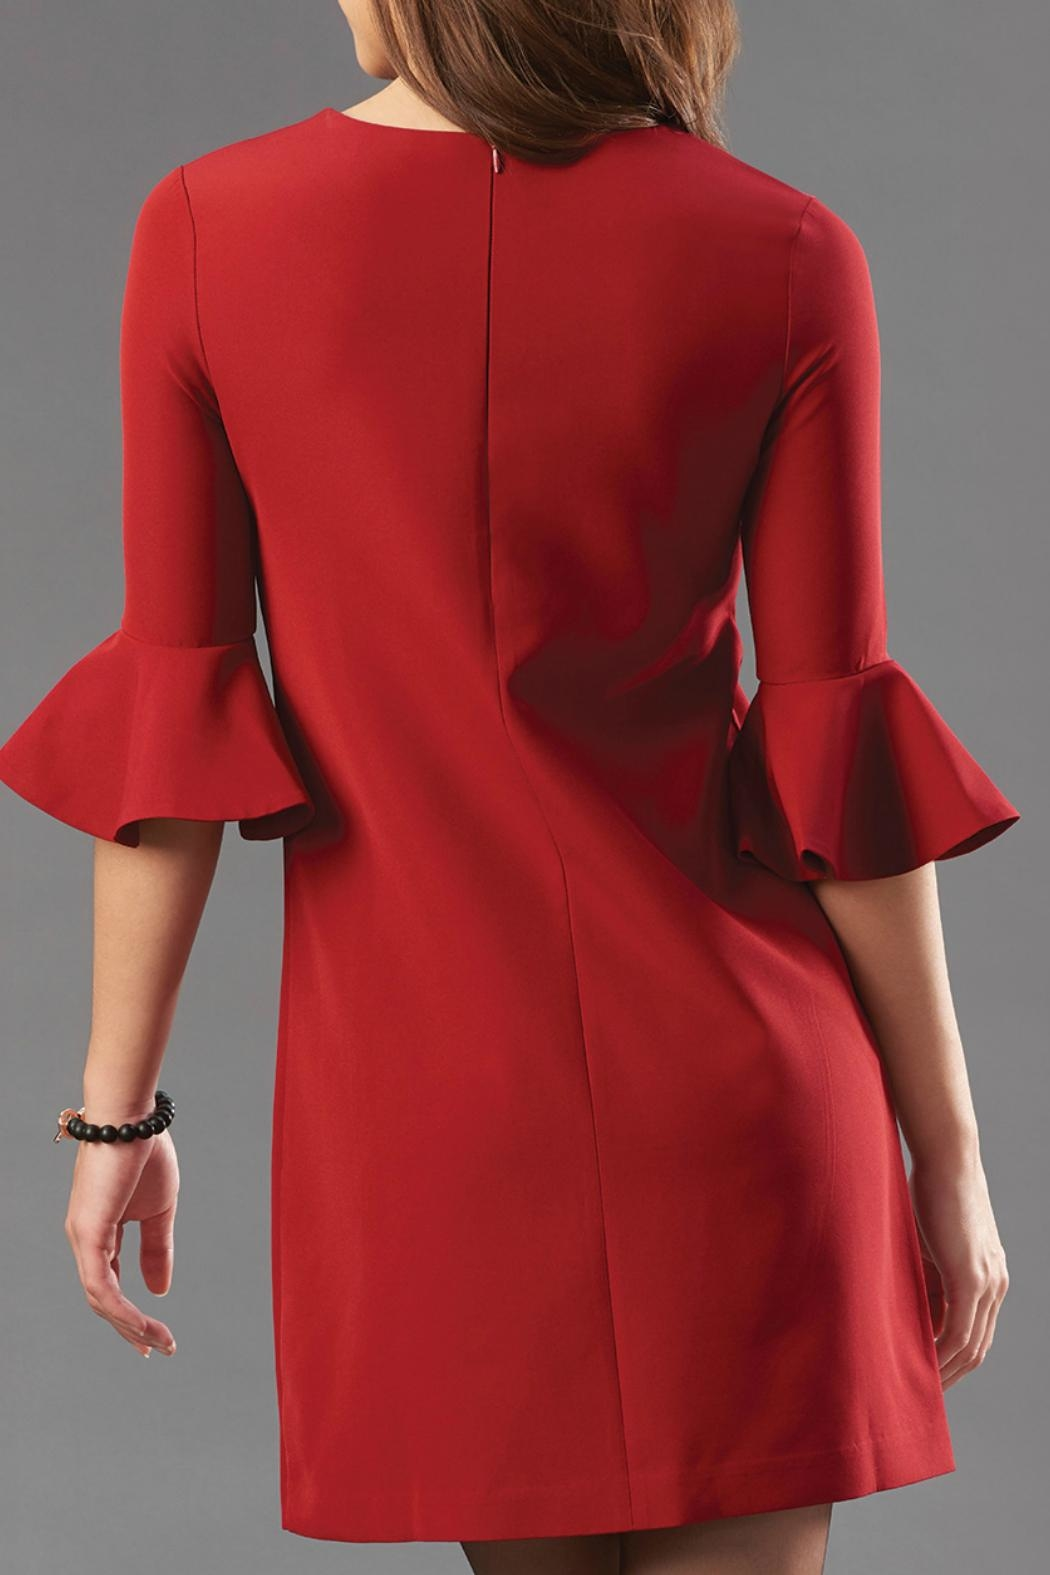 Charlie Paige Flared Sleeve Dress - Front Full Image